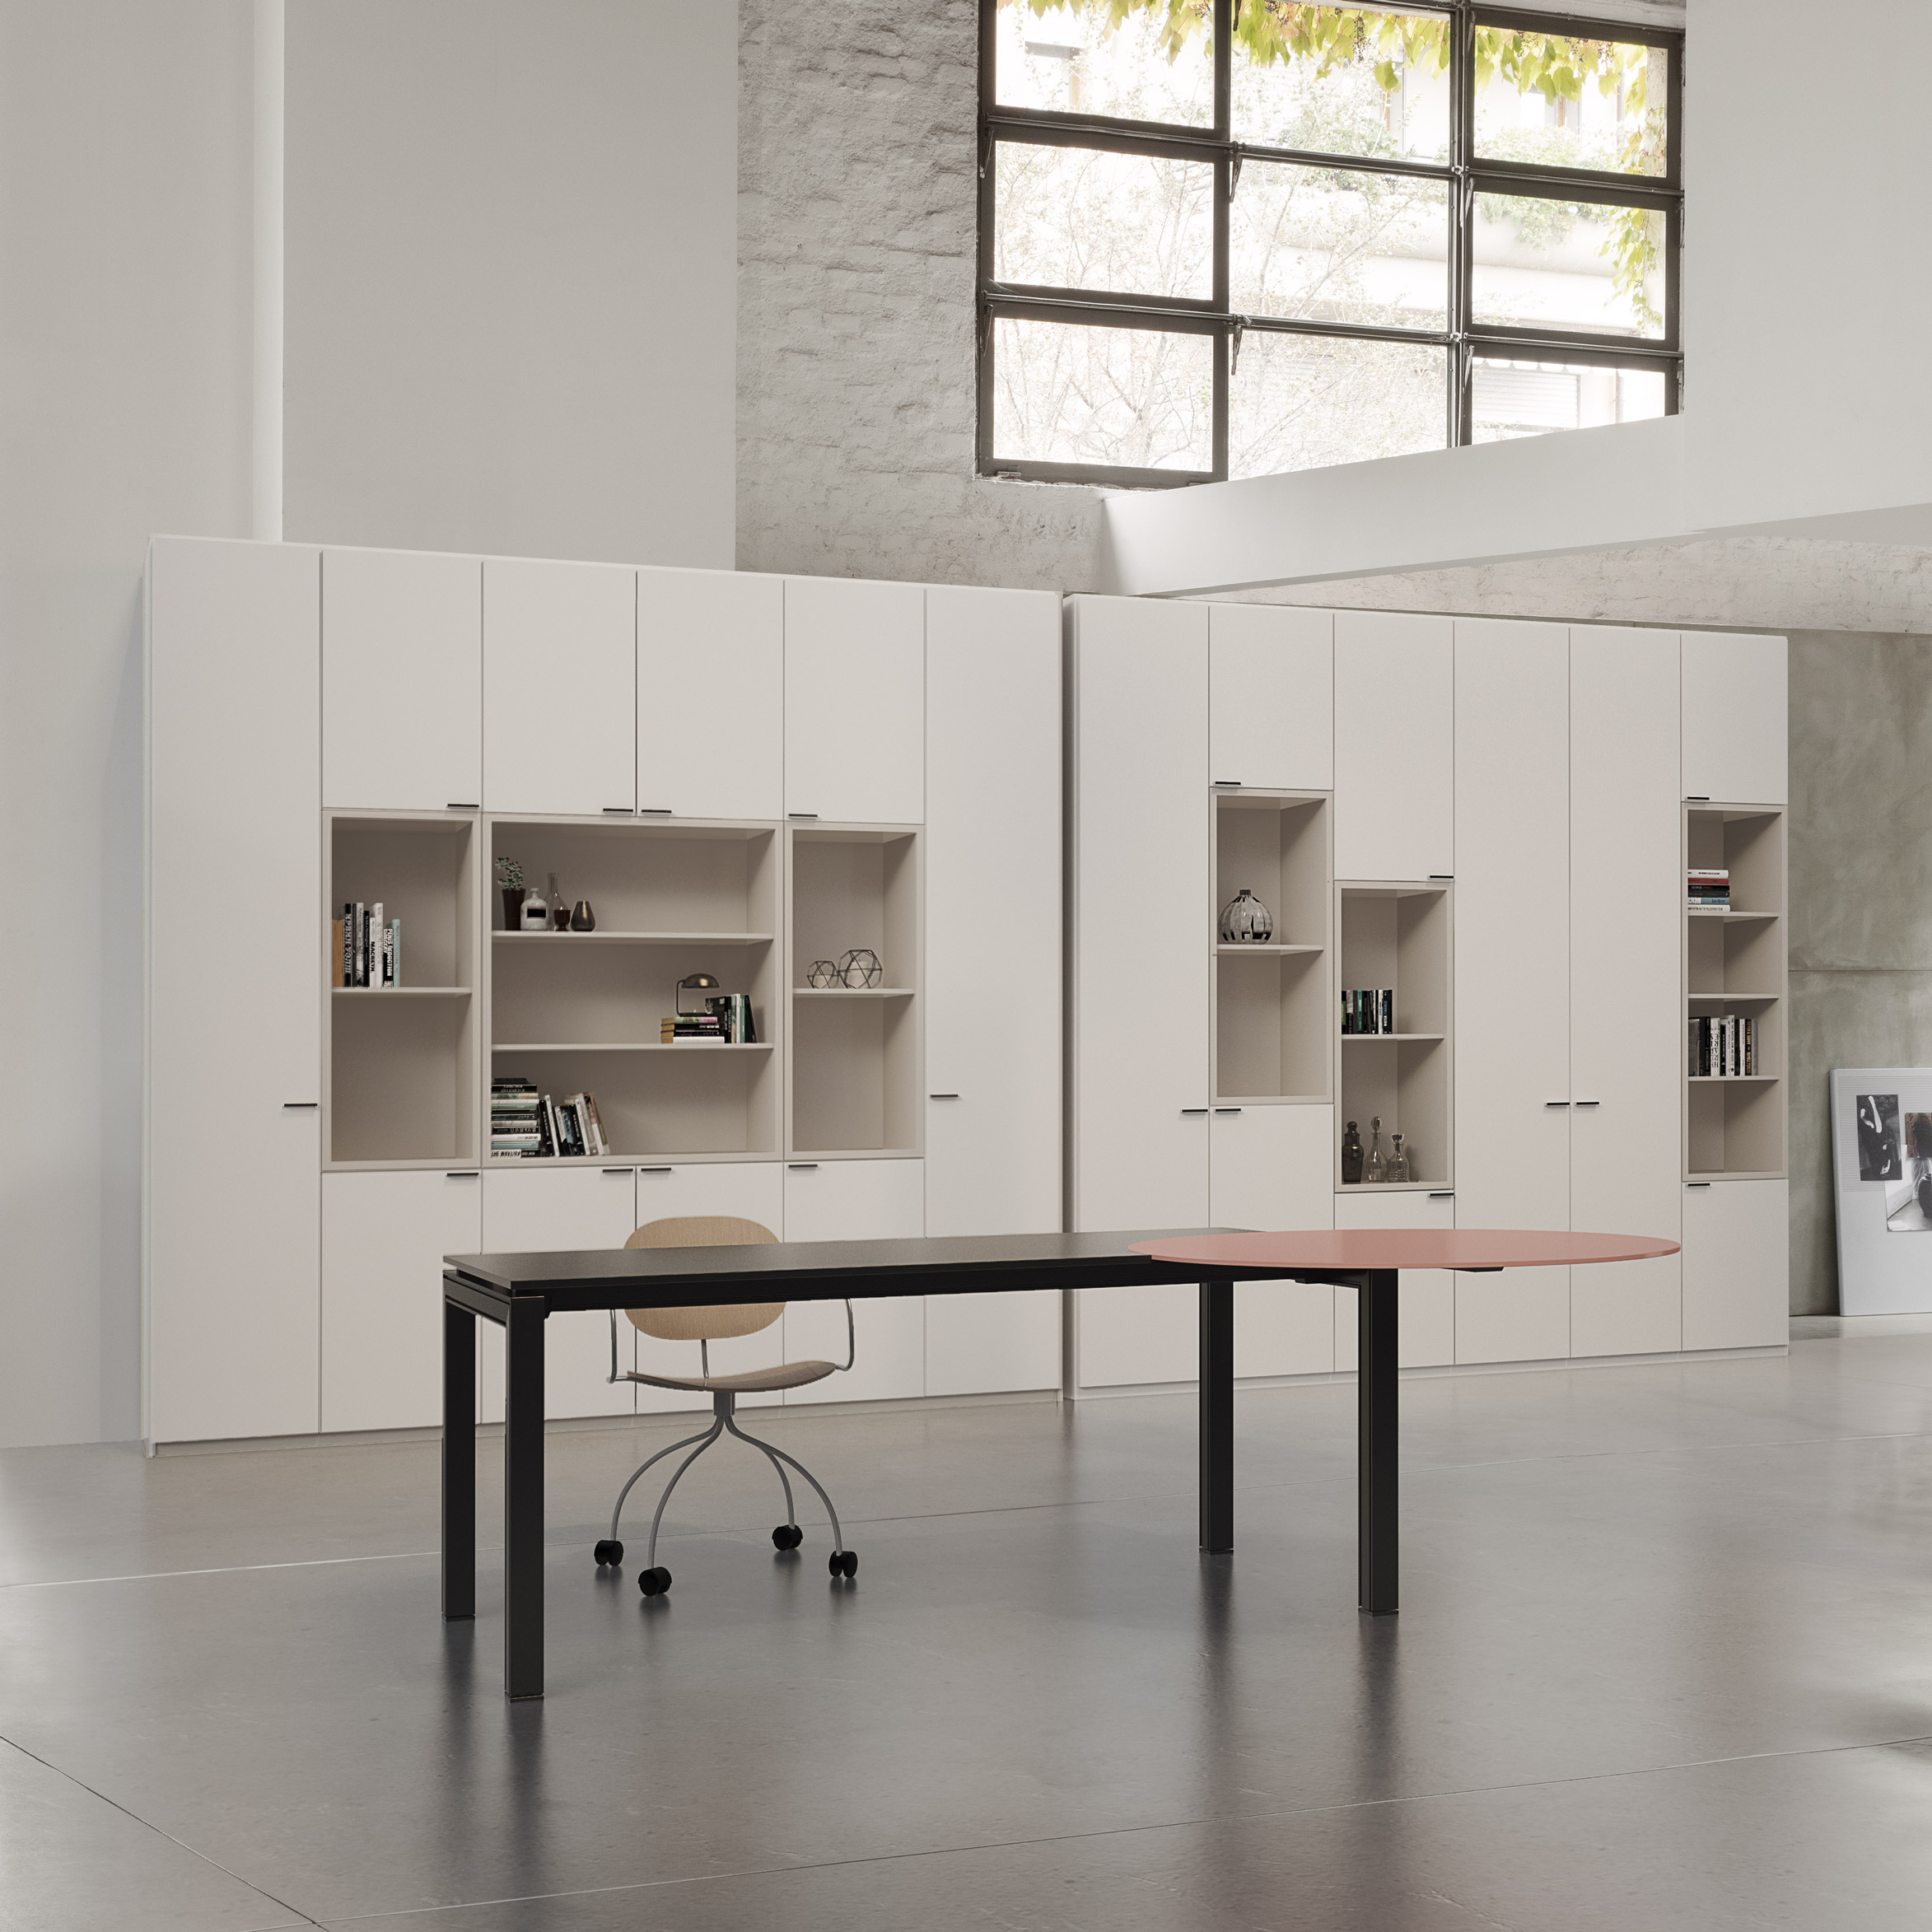 Quadronno storage system by IOC Project Partners